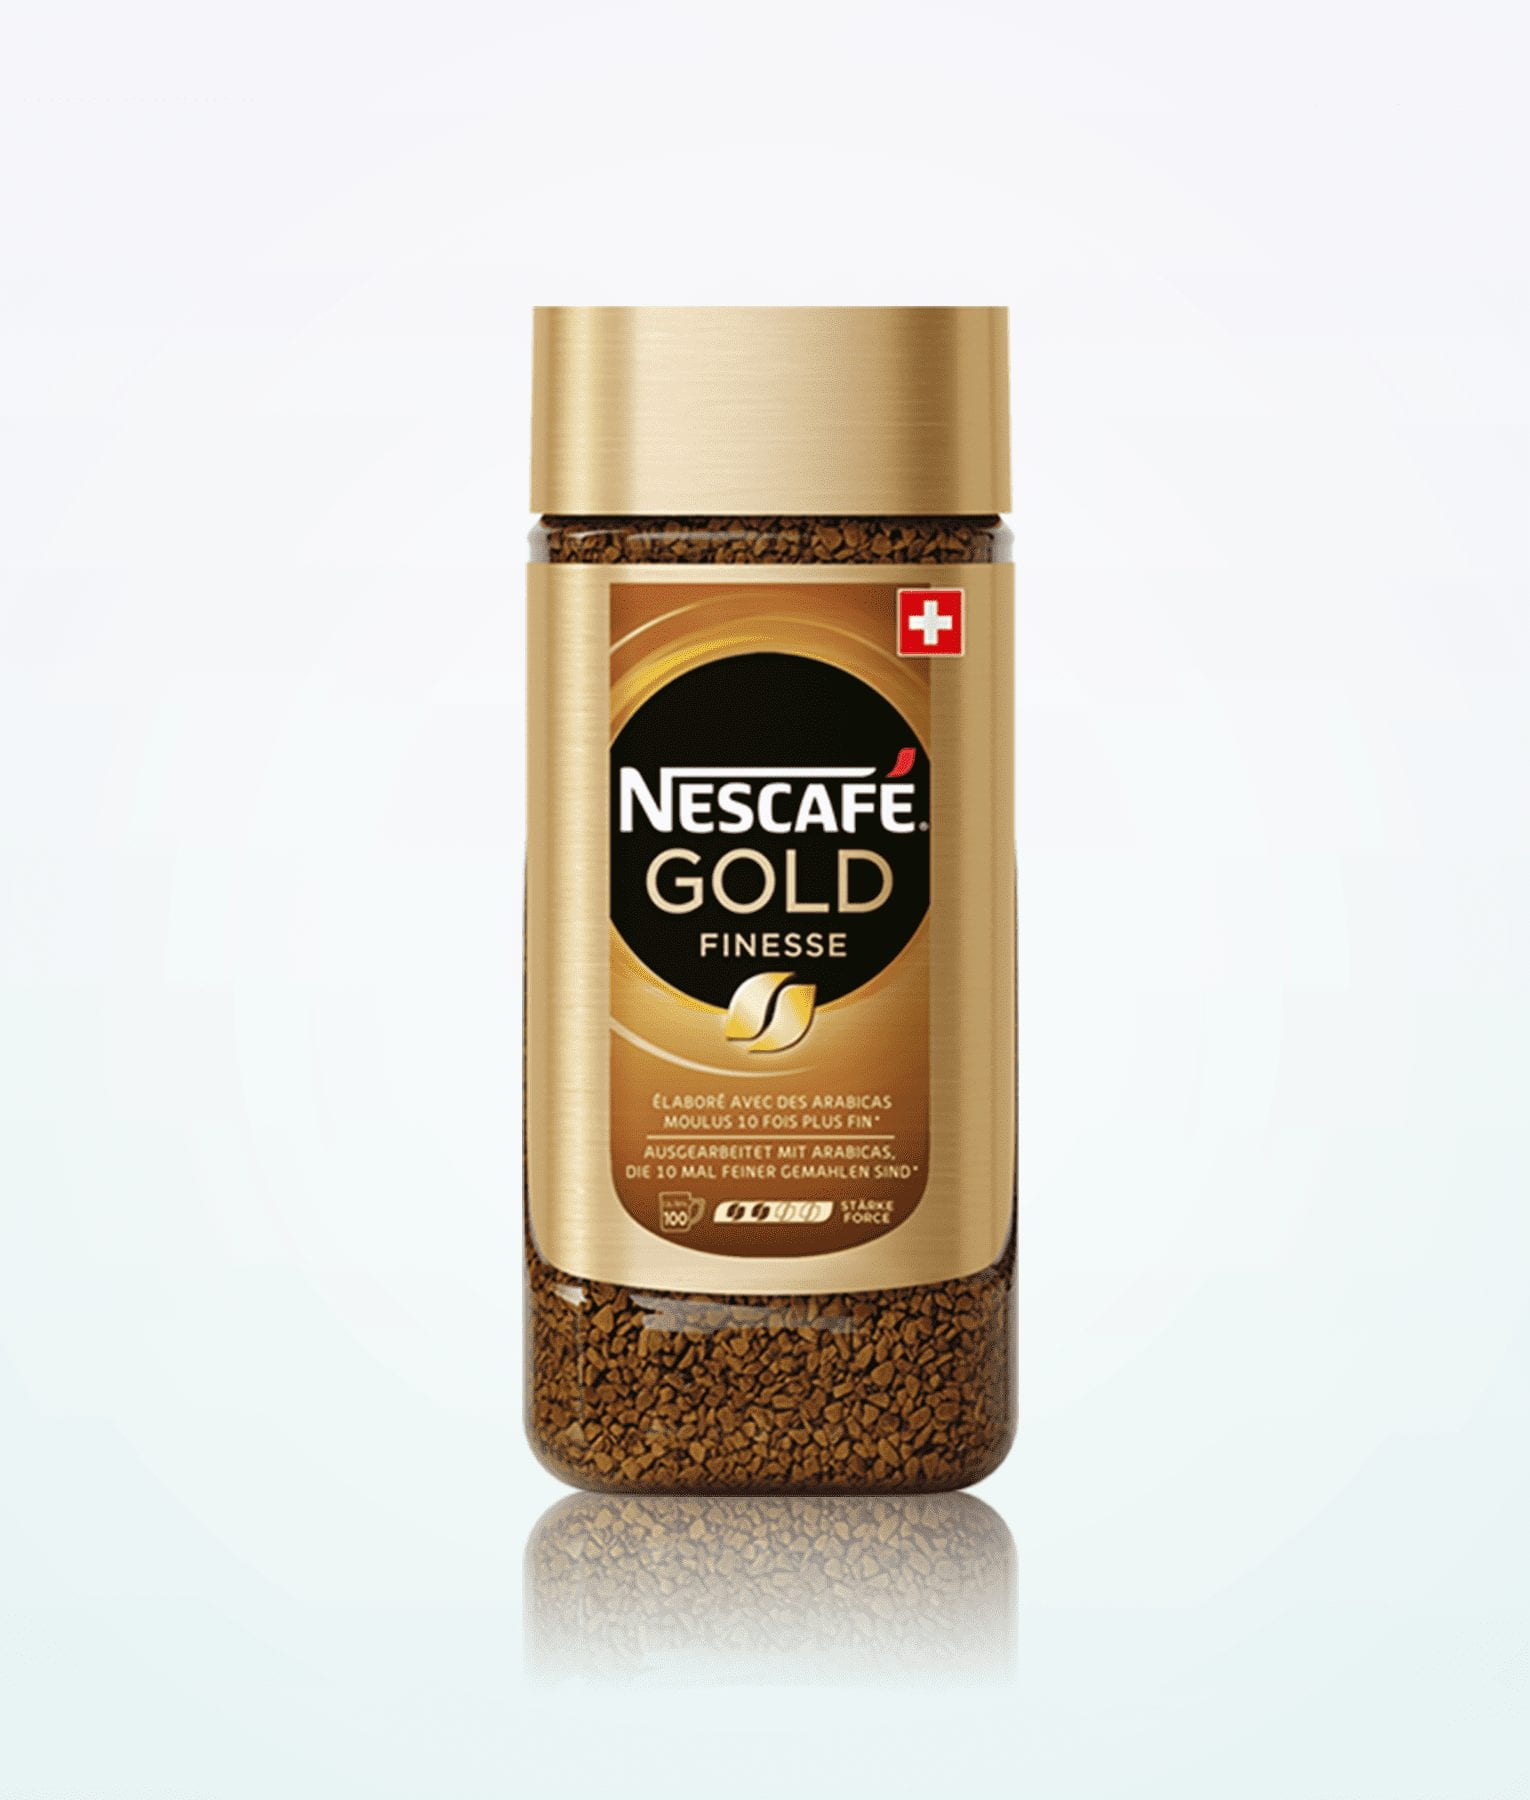 nescafe-gold-finesse-200g